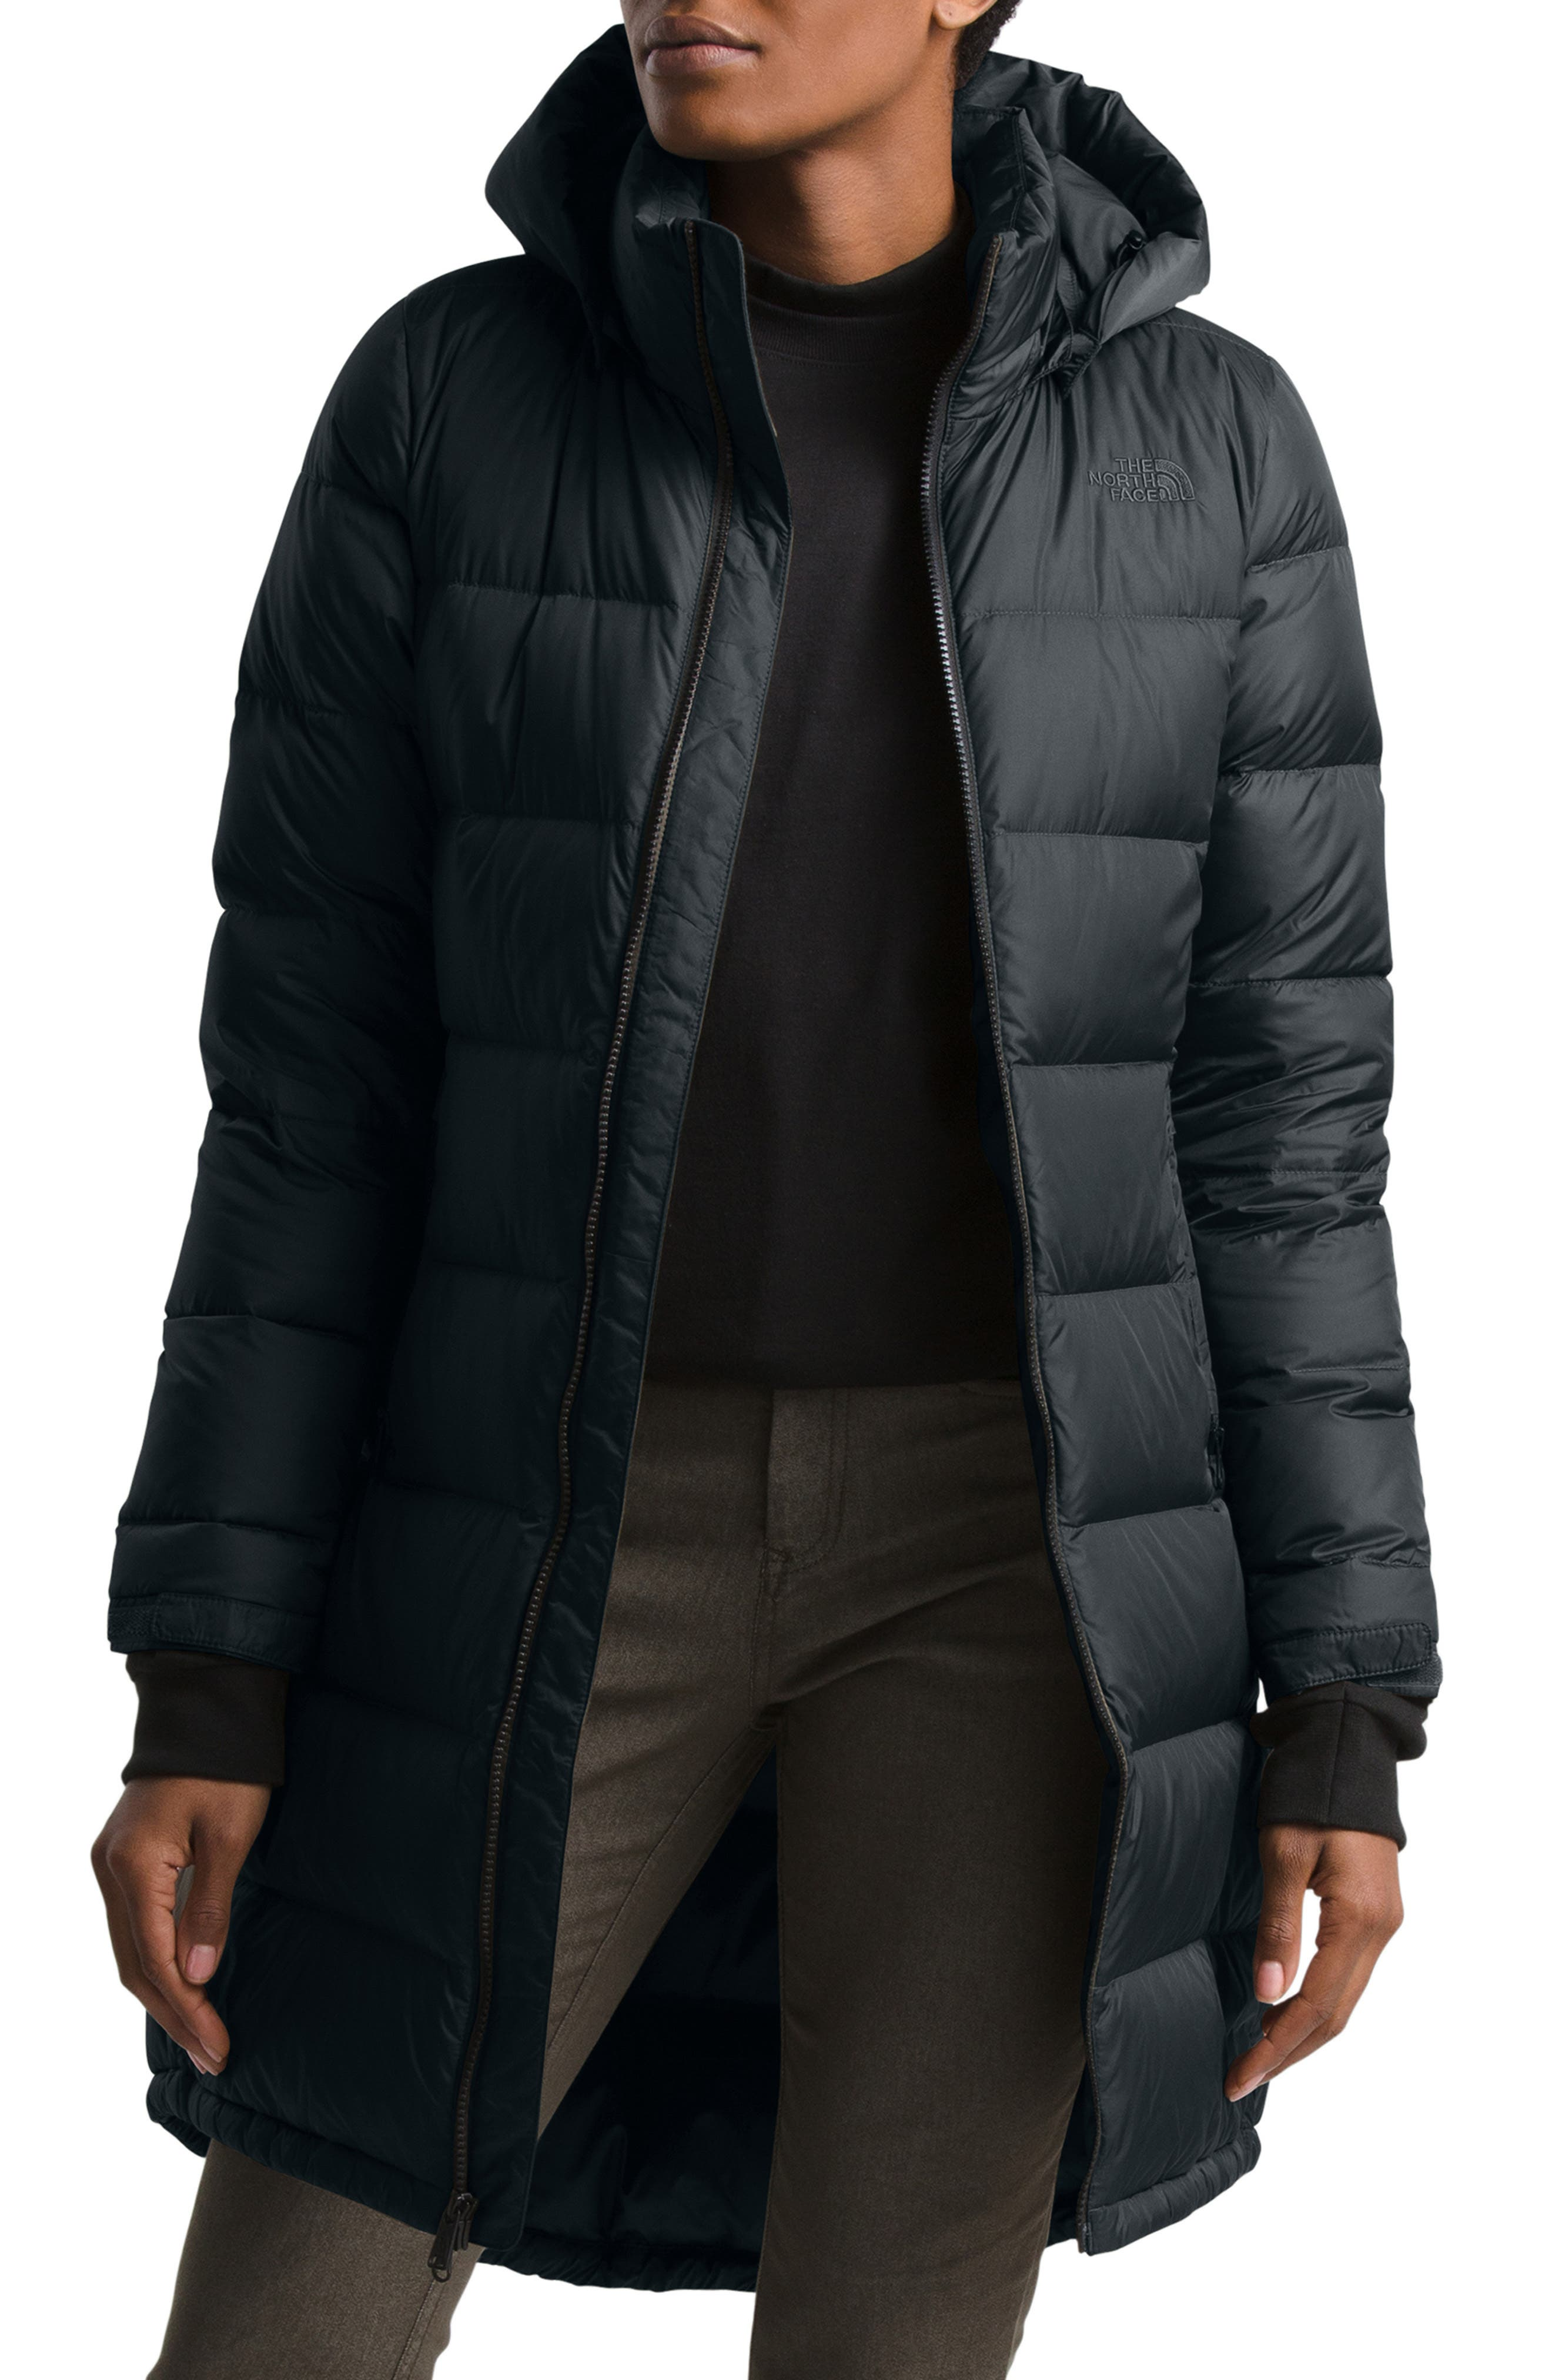 CROYEE Womens Winter Long Down Coat Puffer Coat with Removable Hood